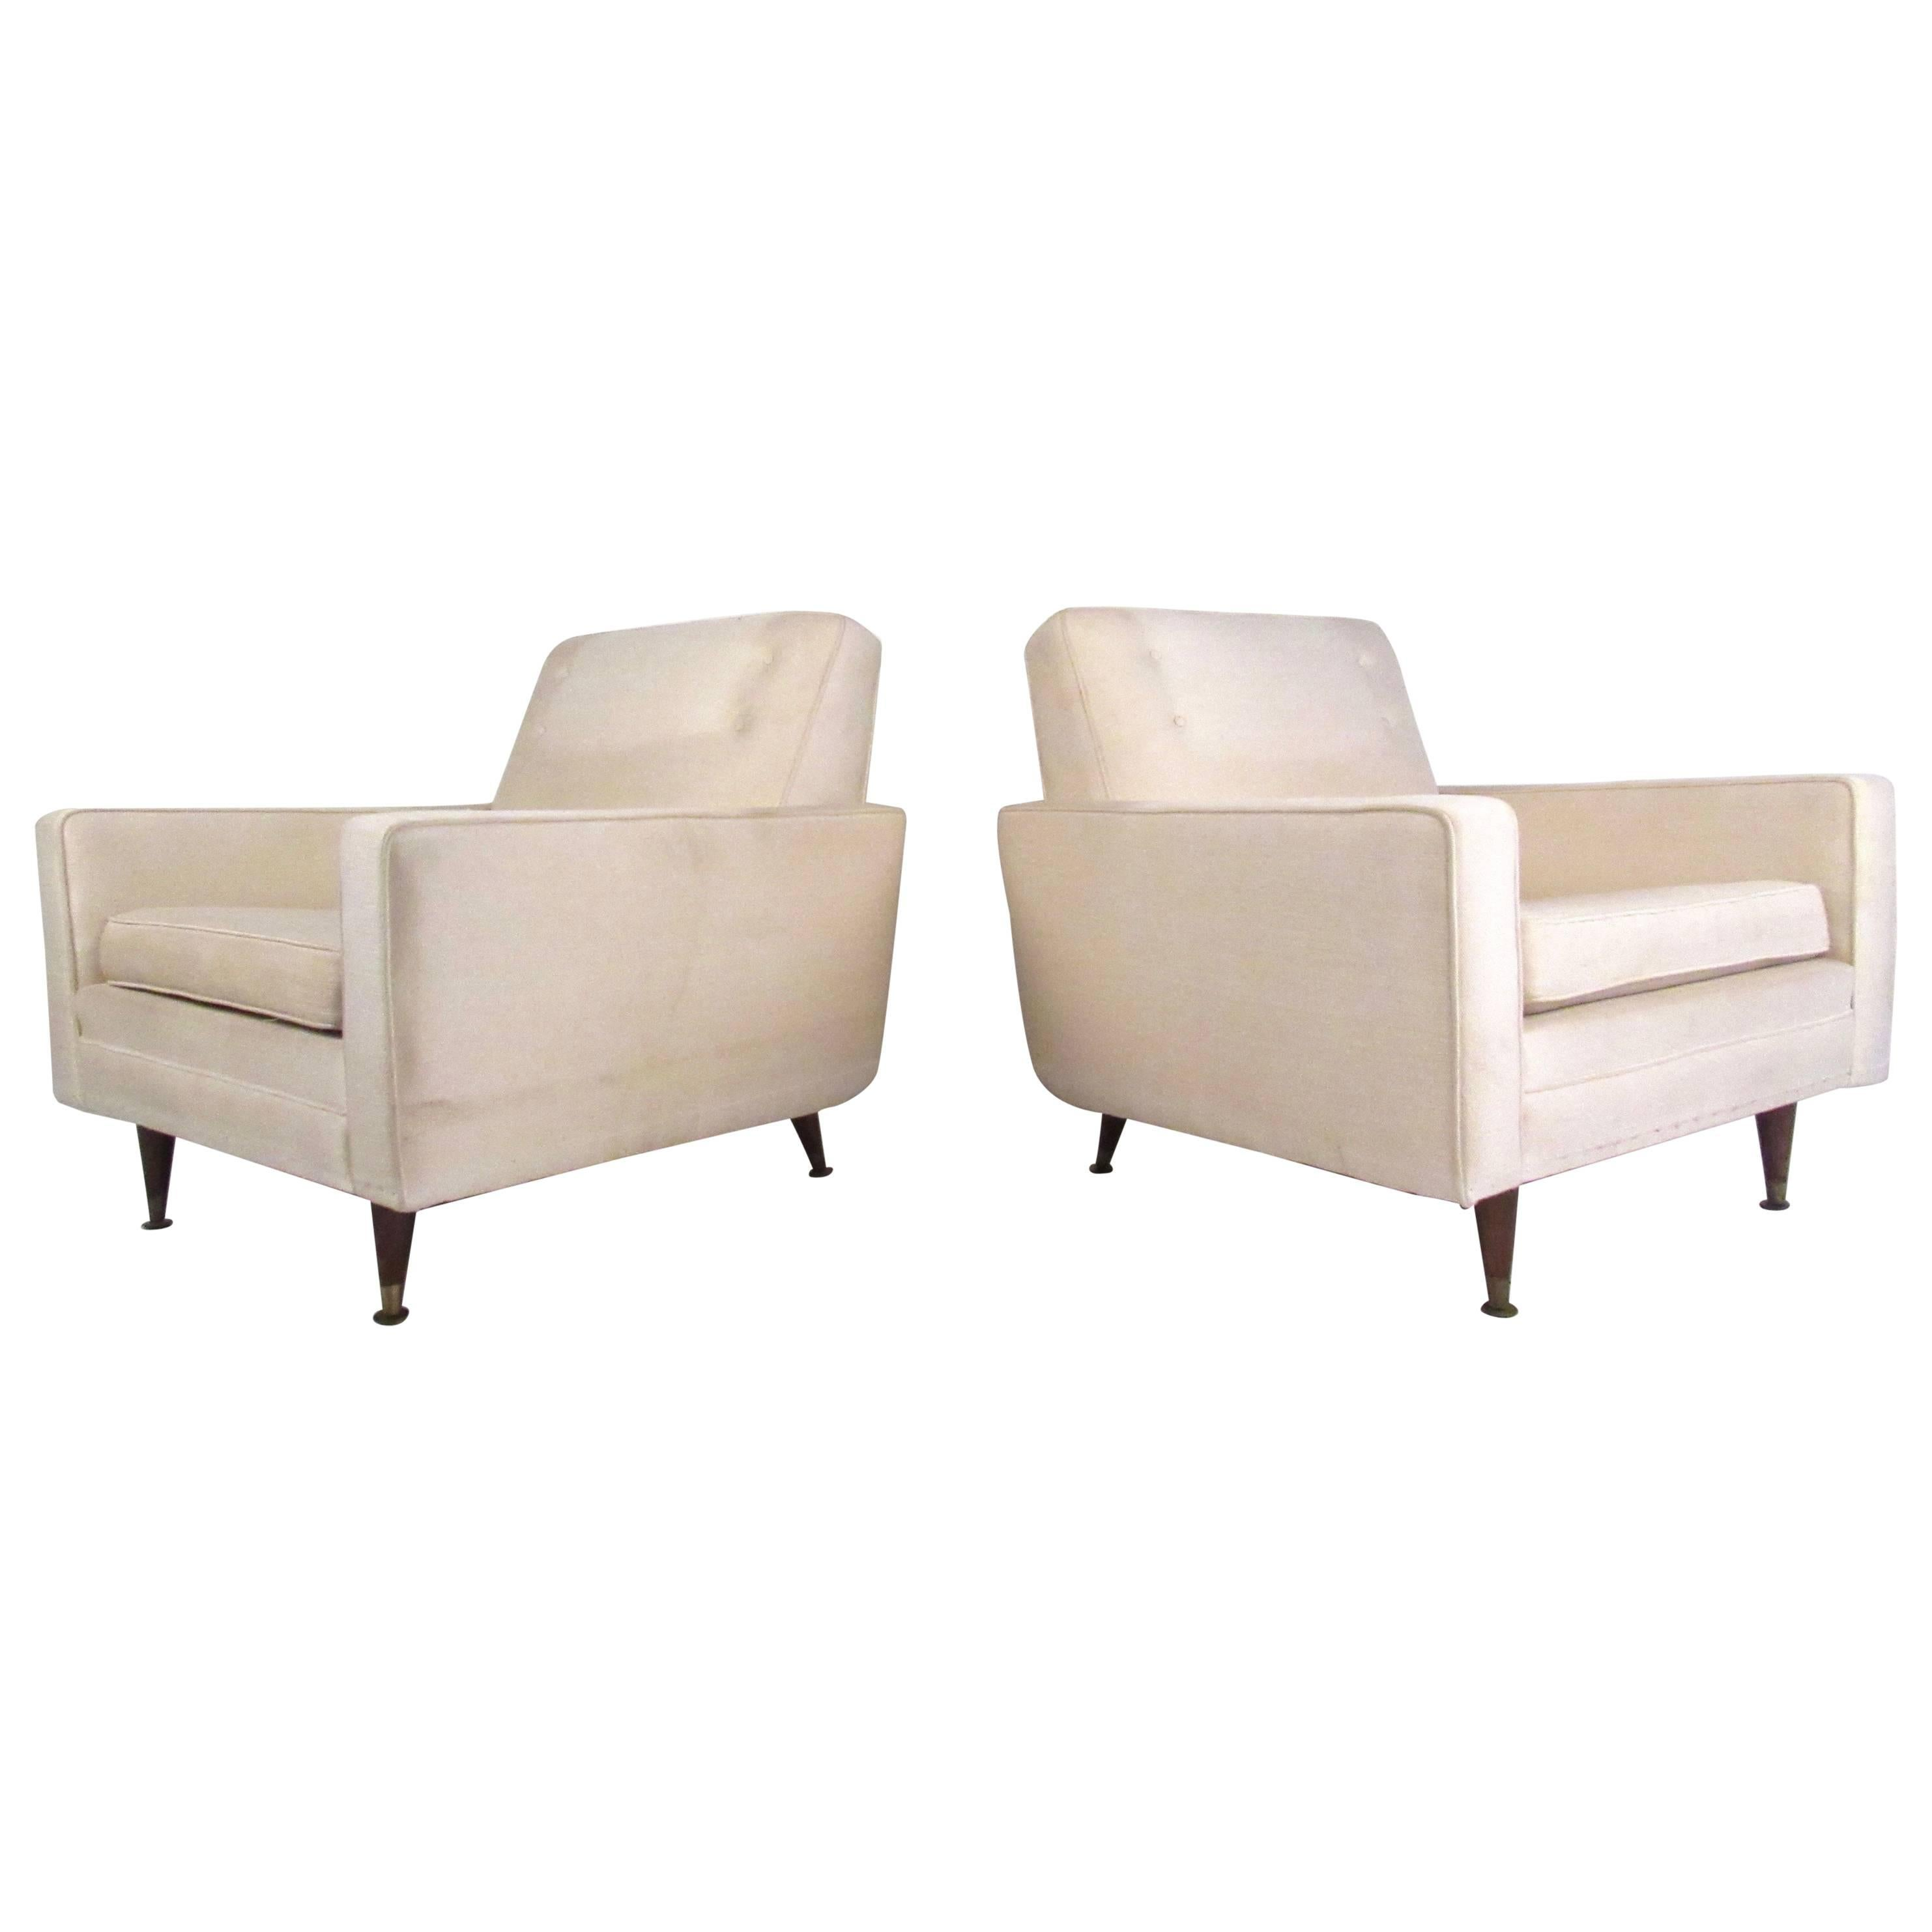 Pair of Mid-Century Modern Paul McCobb Style Lounge Chairs